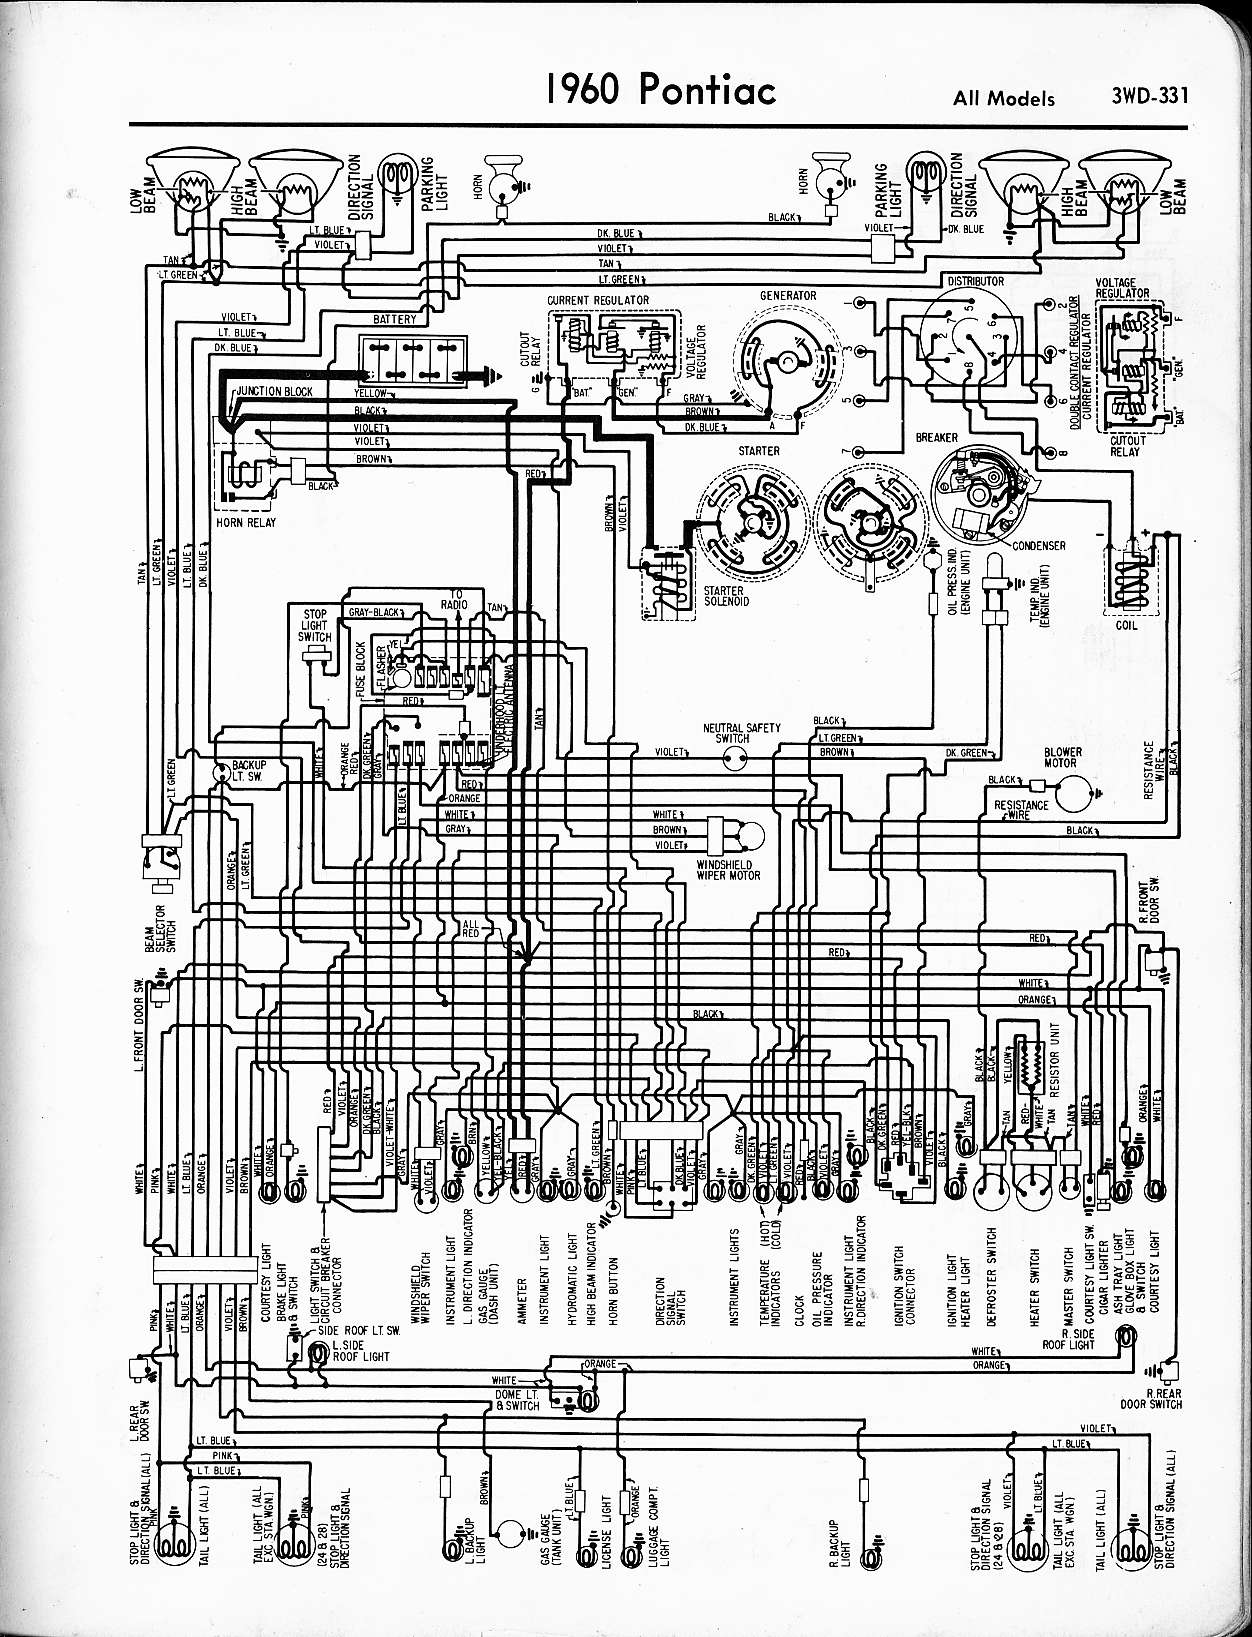 1968 Pontiac Bonneville Wiring Diagram Great Installation Of 2001 Sle Fuse Box Wallace Racing Diagrams Rh Wallaceracing Com Ssei